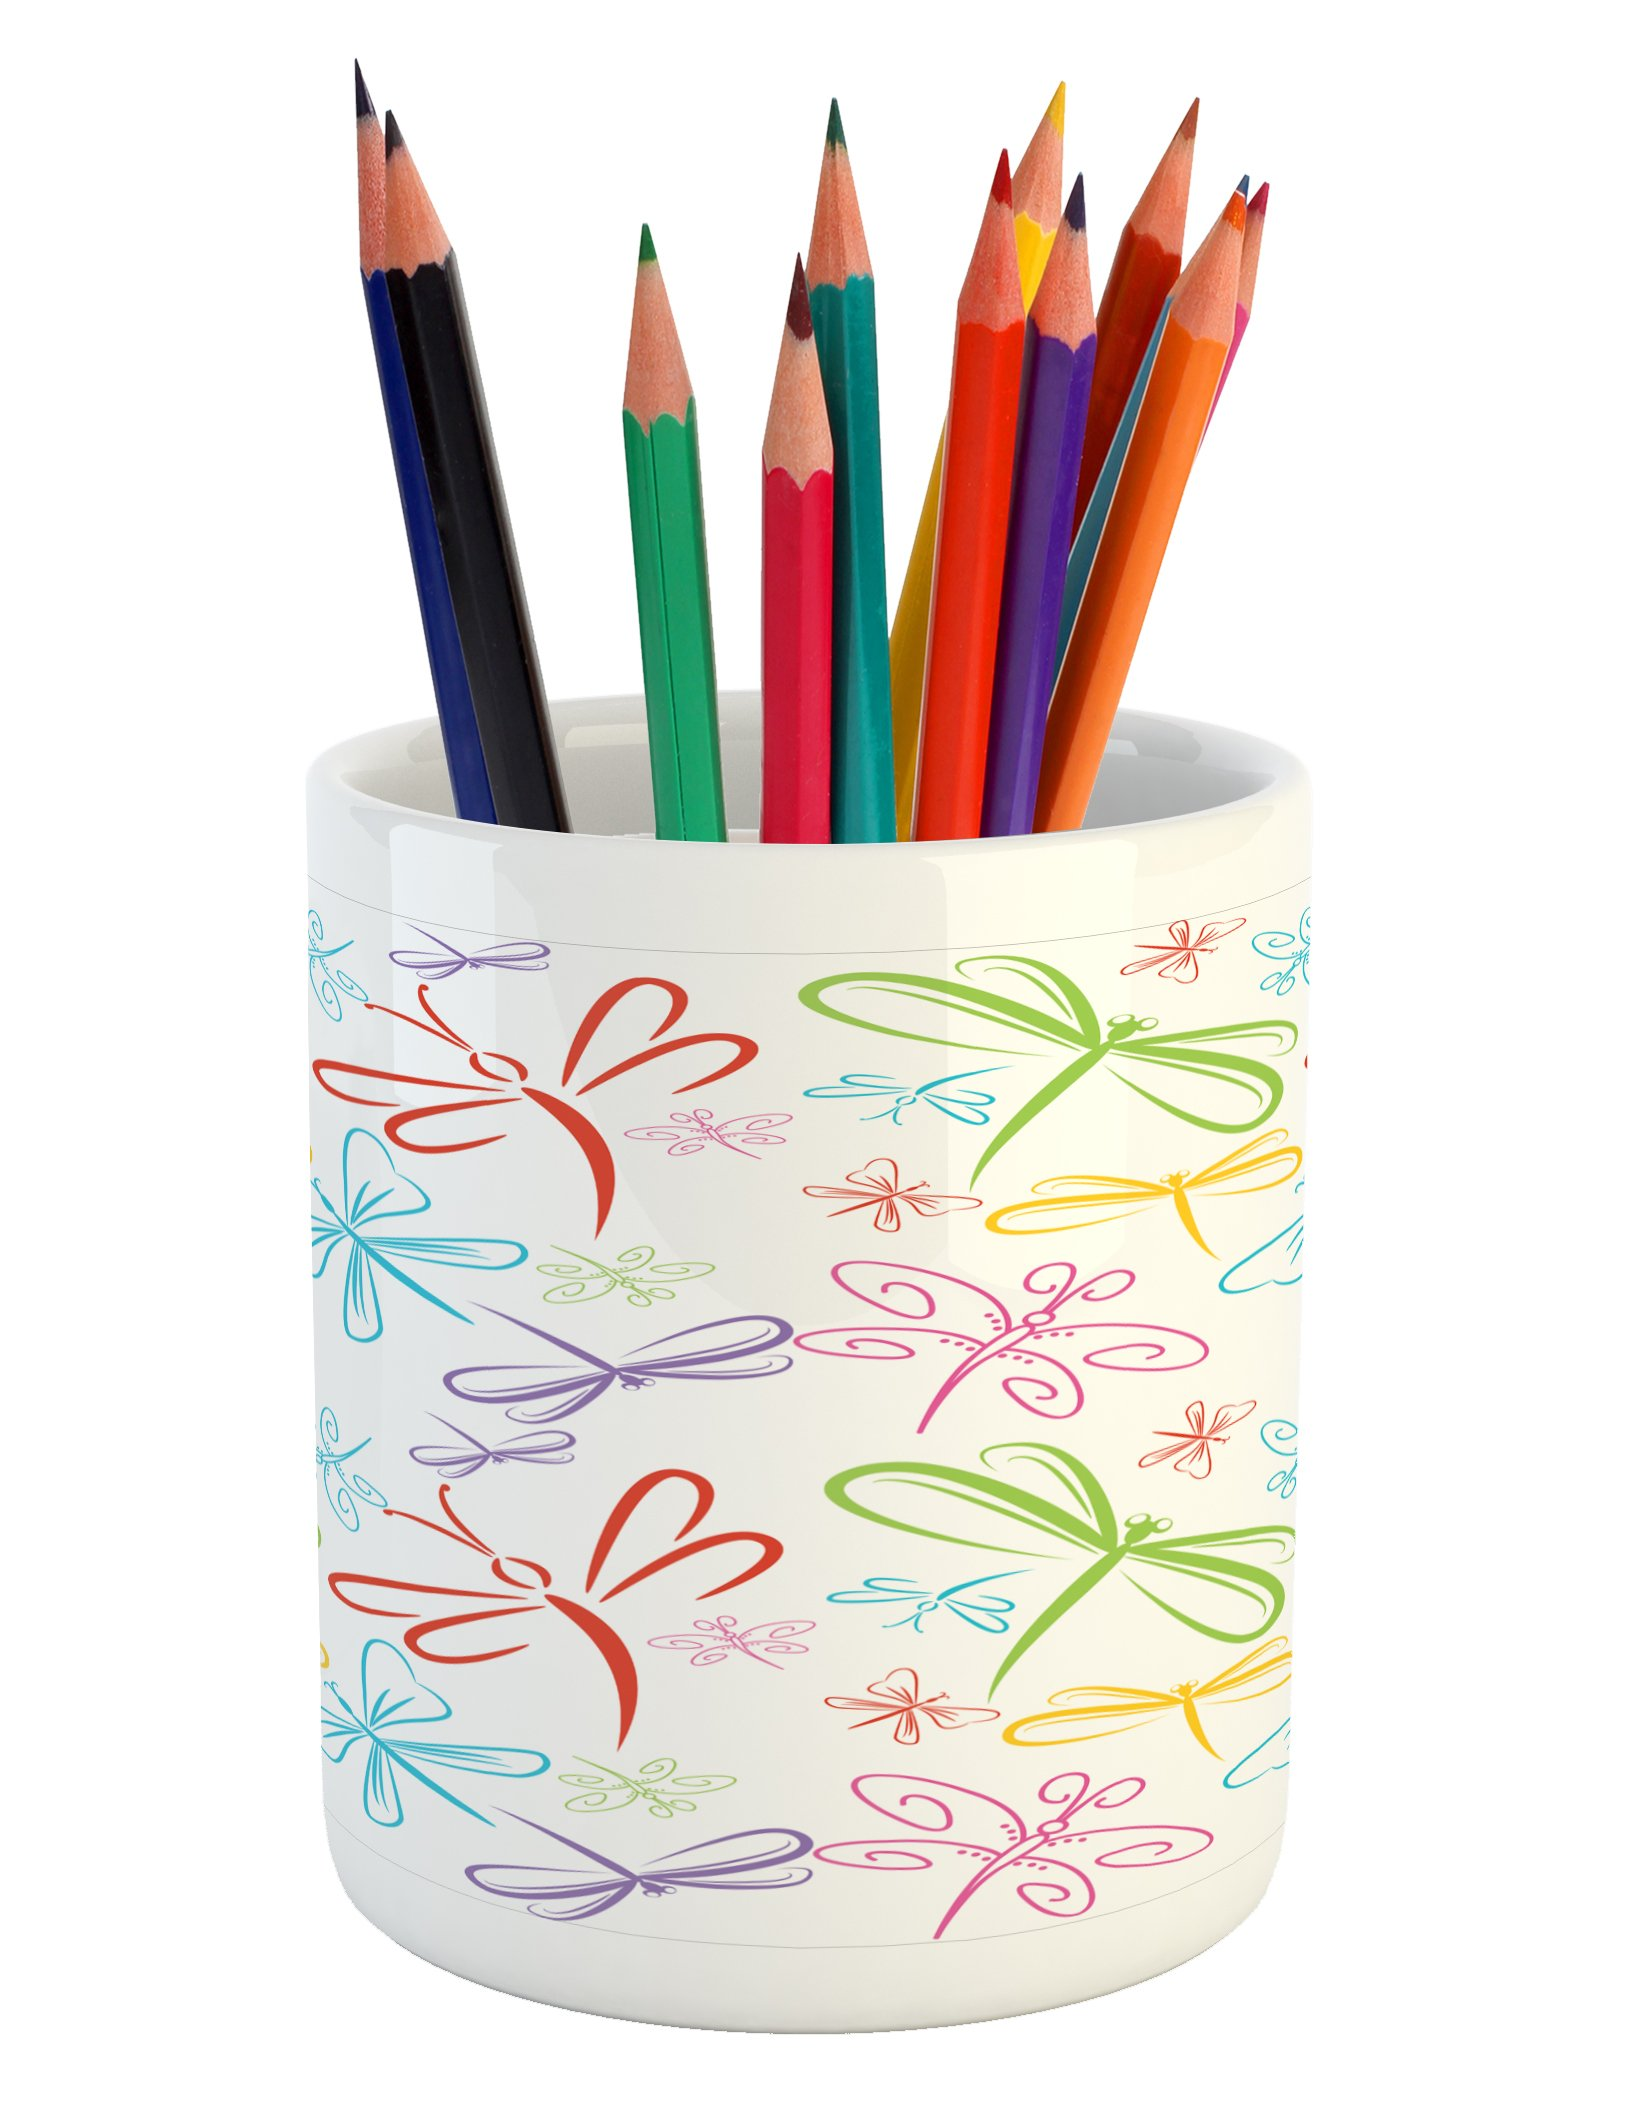 Ambesonne Dragonfly Pencil Pen Holder, Cute Insects Winged Freedom Symbol Colorful Animal Icons Childish Illustration, Printed Ceramic Pencil Pen Holder for Desk Office Accessory, Multicolor